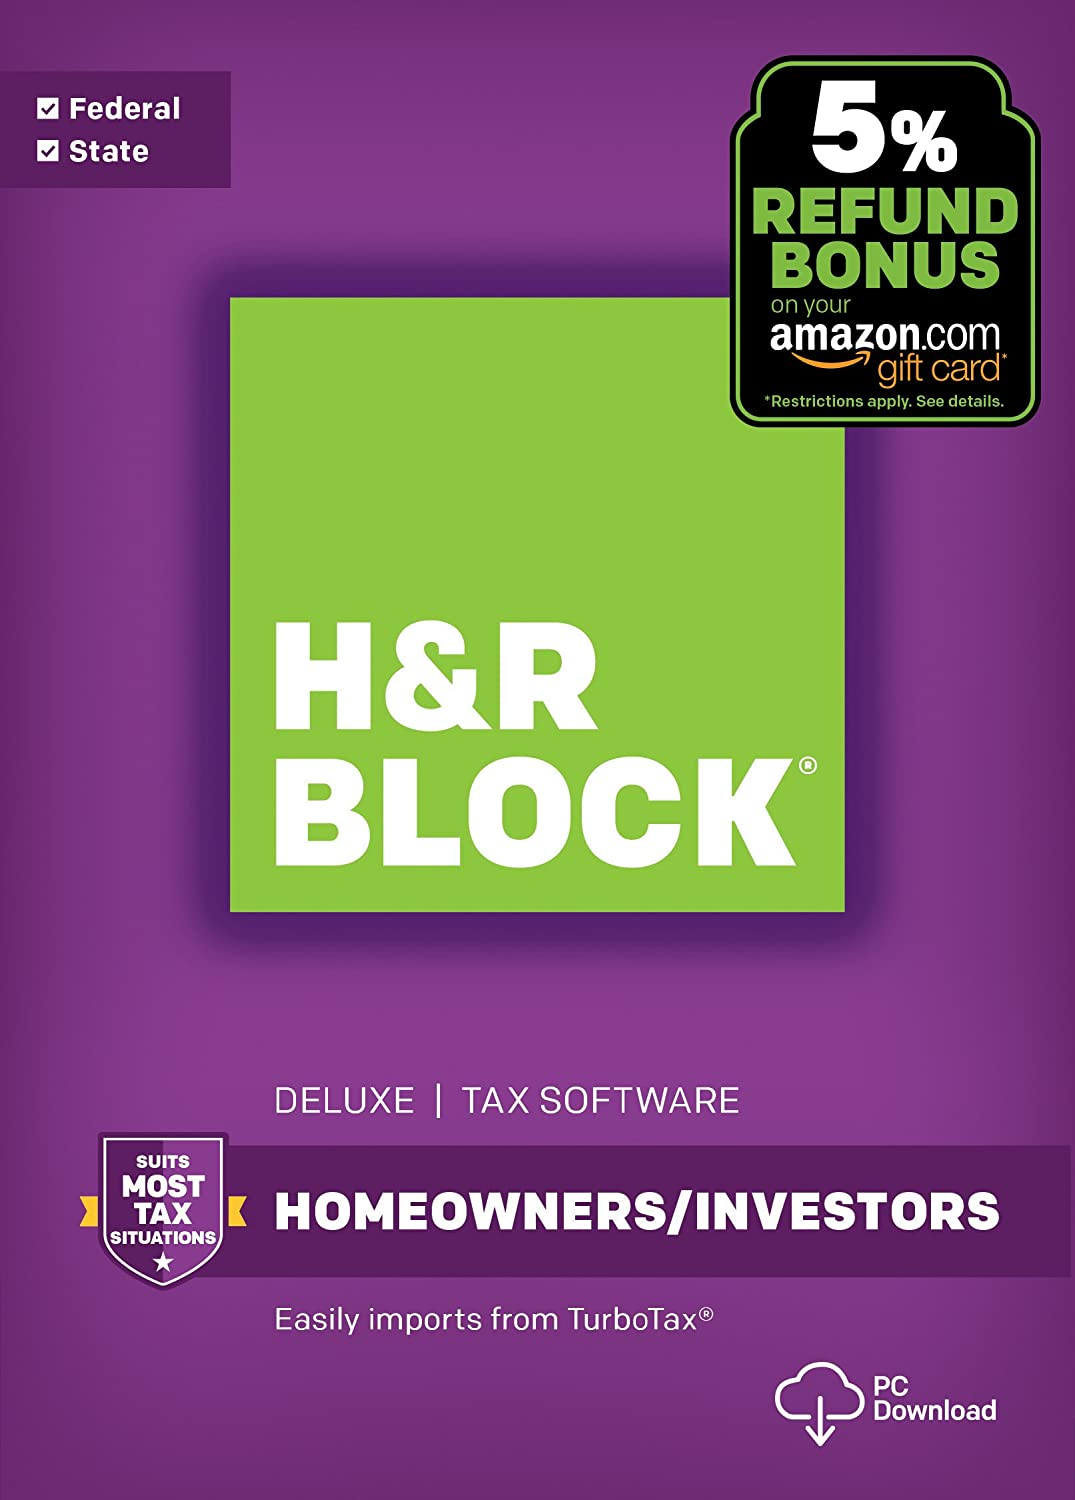 Amazon.com: H&R Block Tax Software Deluxe + State 2017 with 5% Refund Bonus  Offer [PC Download]: Software